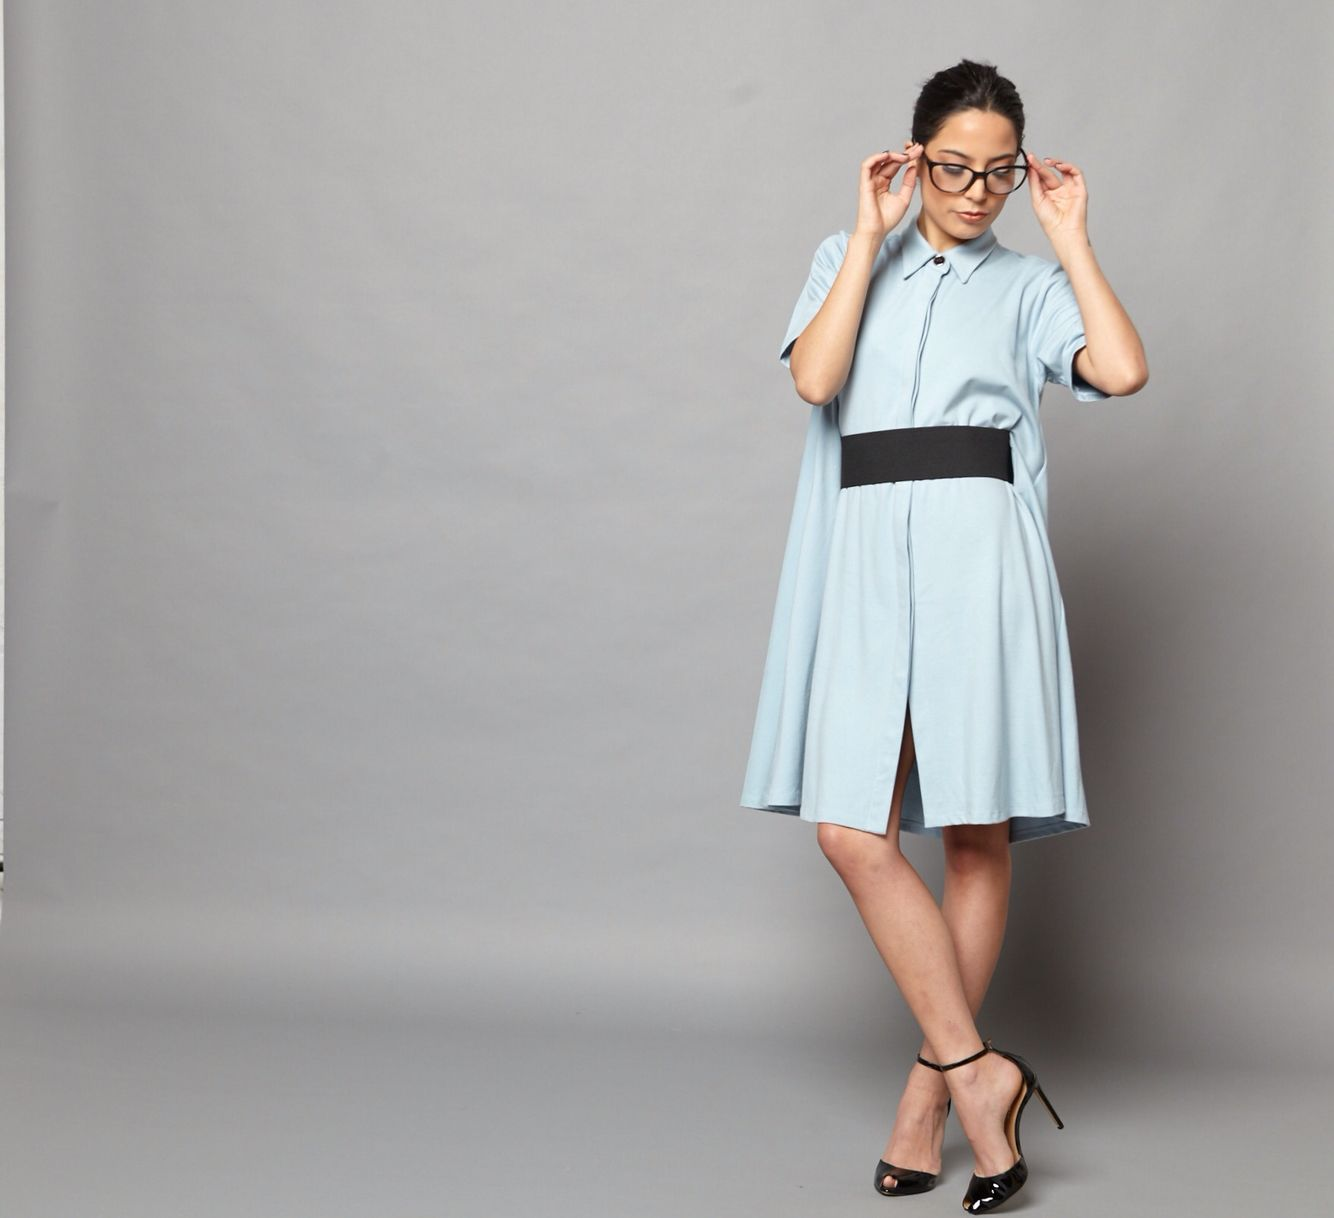 The new Tracy Nicole Clothing Baby Blue Swing Cocktail Dress www.tracynicoleclothing.com